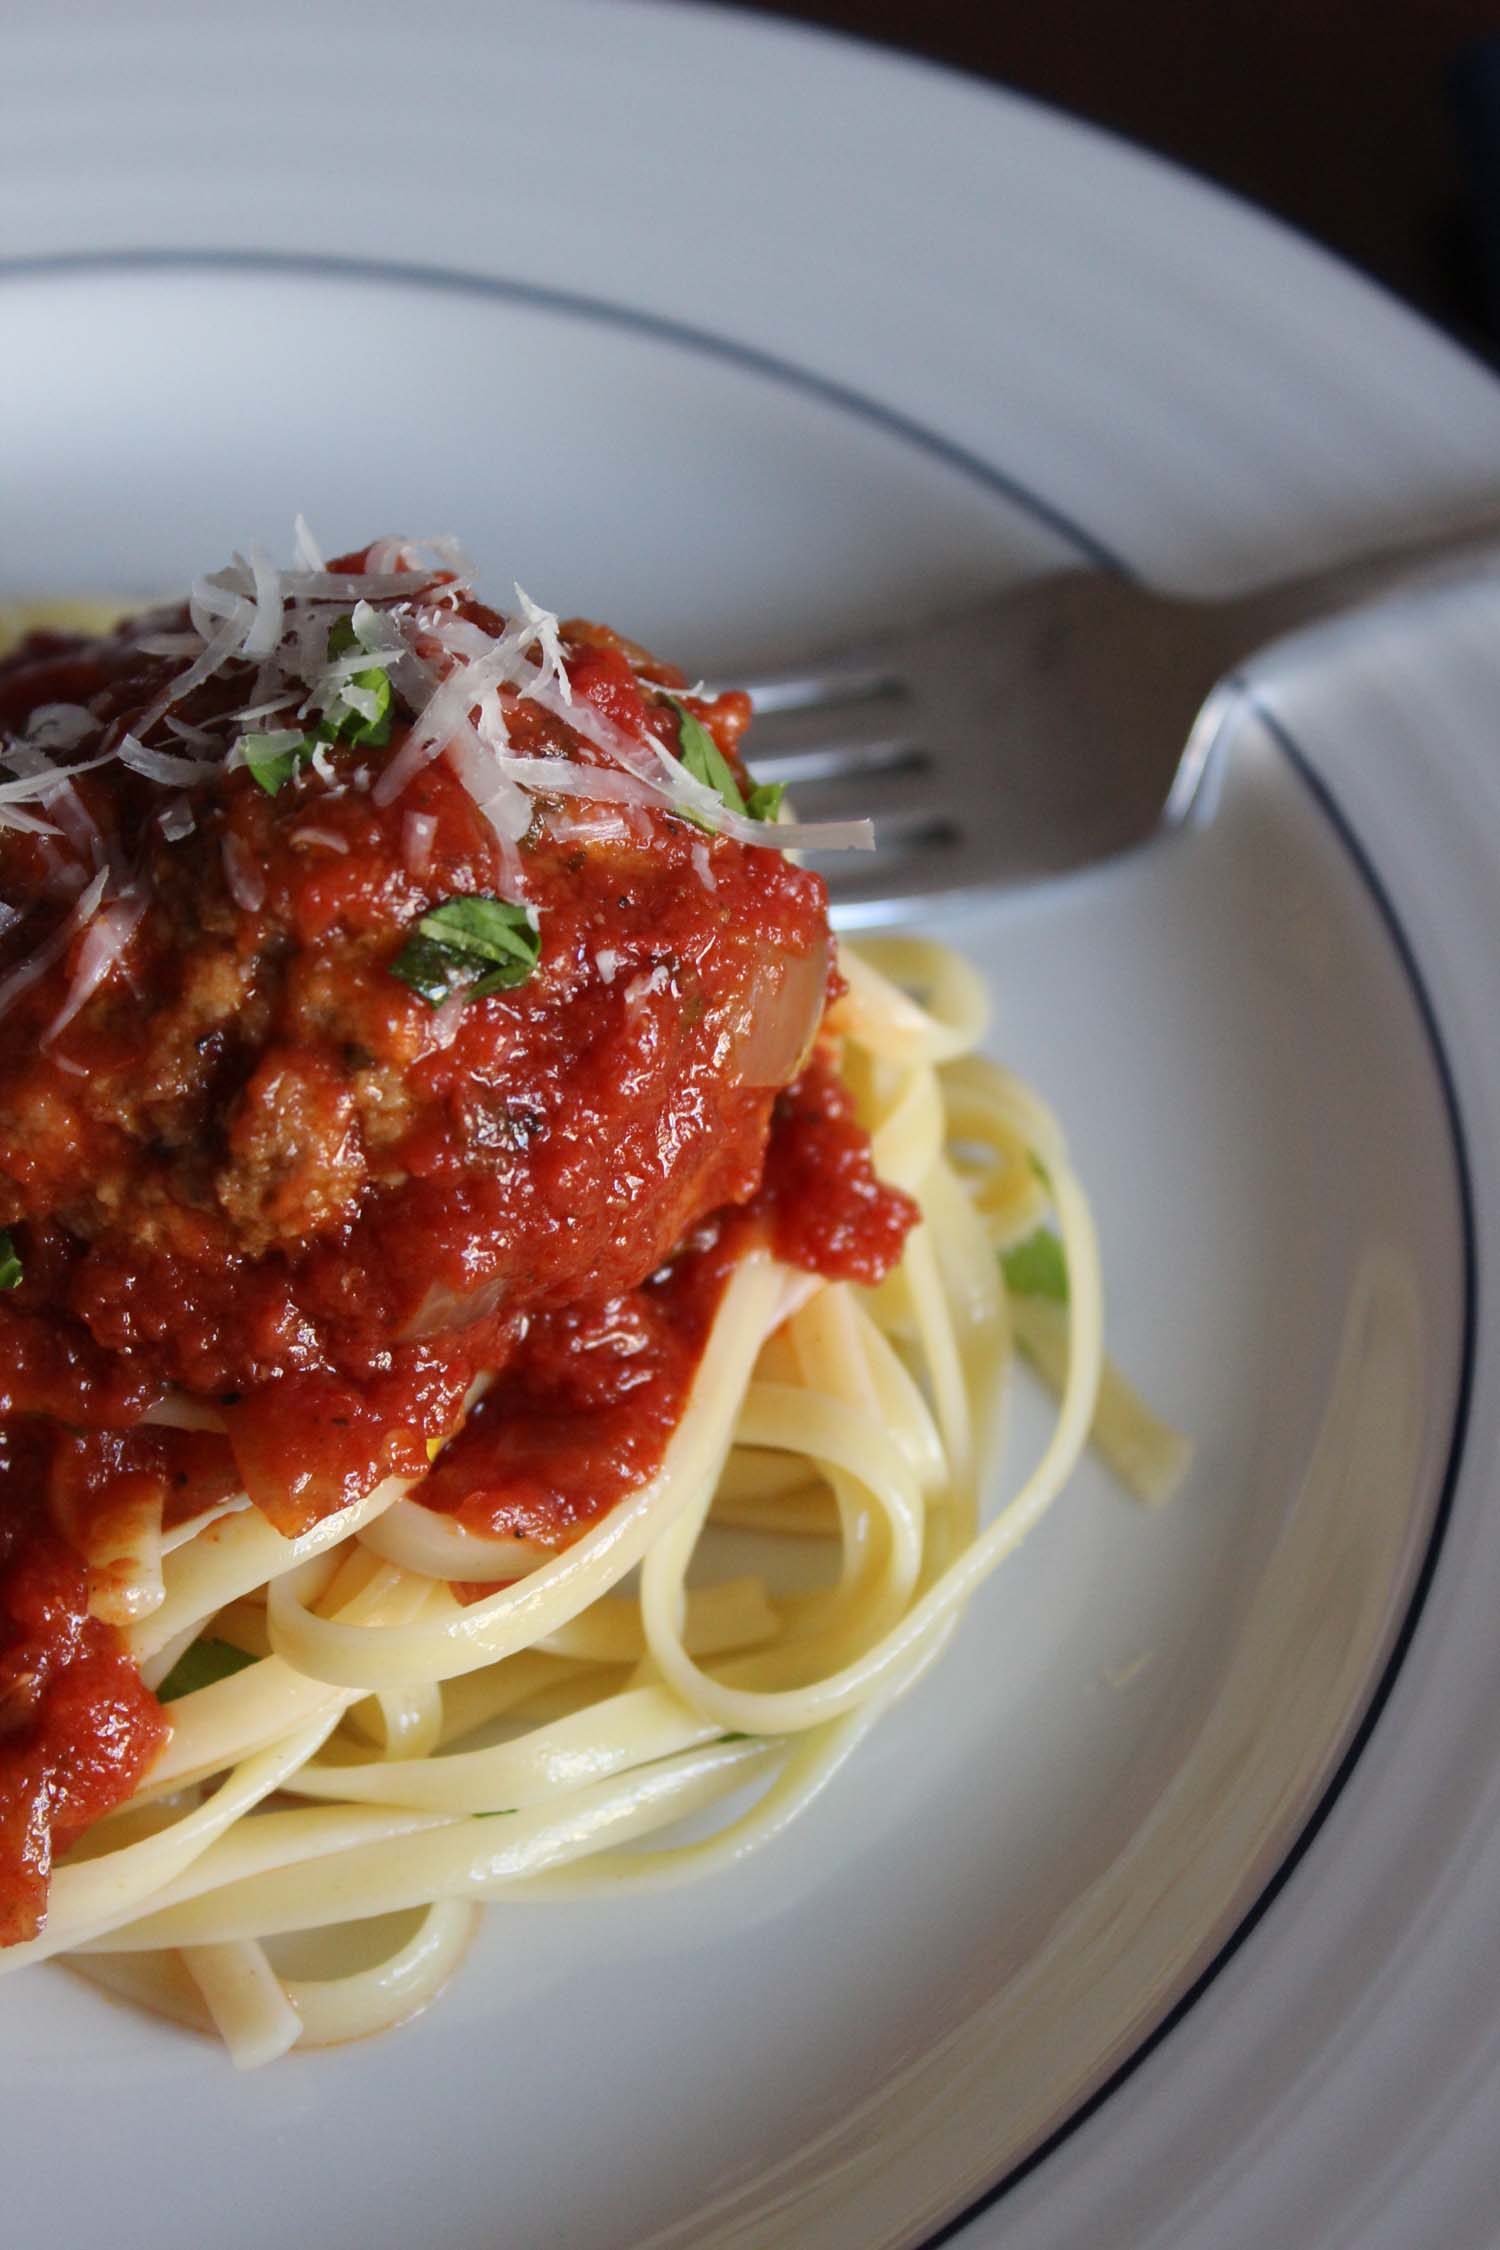 Real Meatballs and Spaghetti | Image: Laura Messersmith